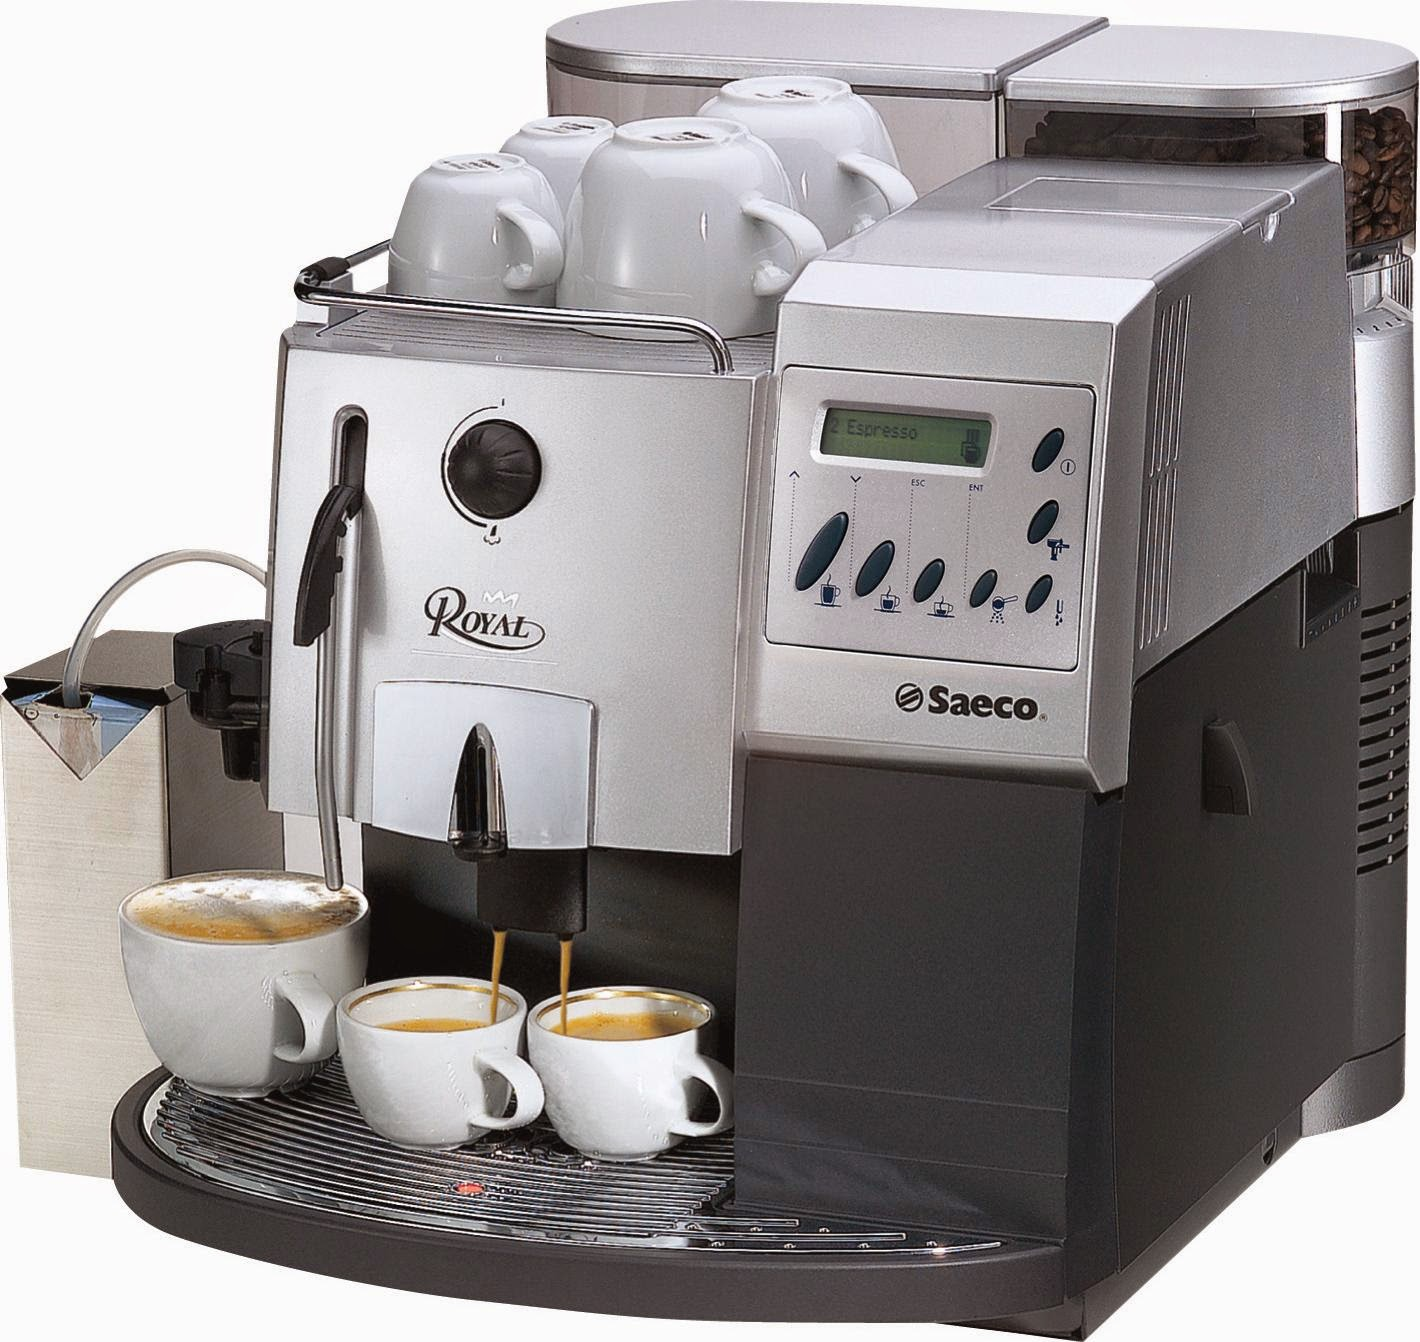 Saeco Royal Coffee shop Espresso Device & Coffee Maker